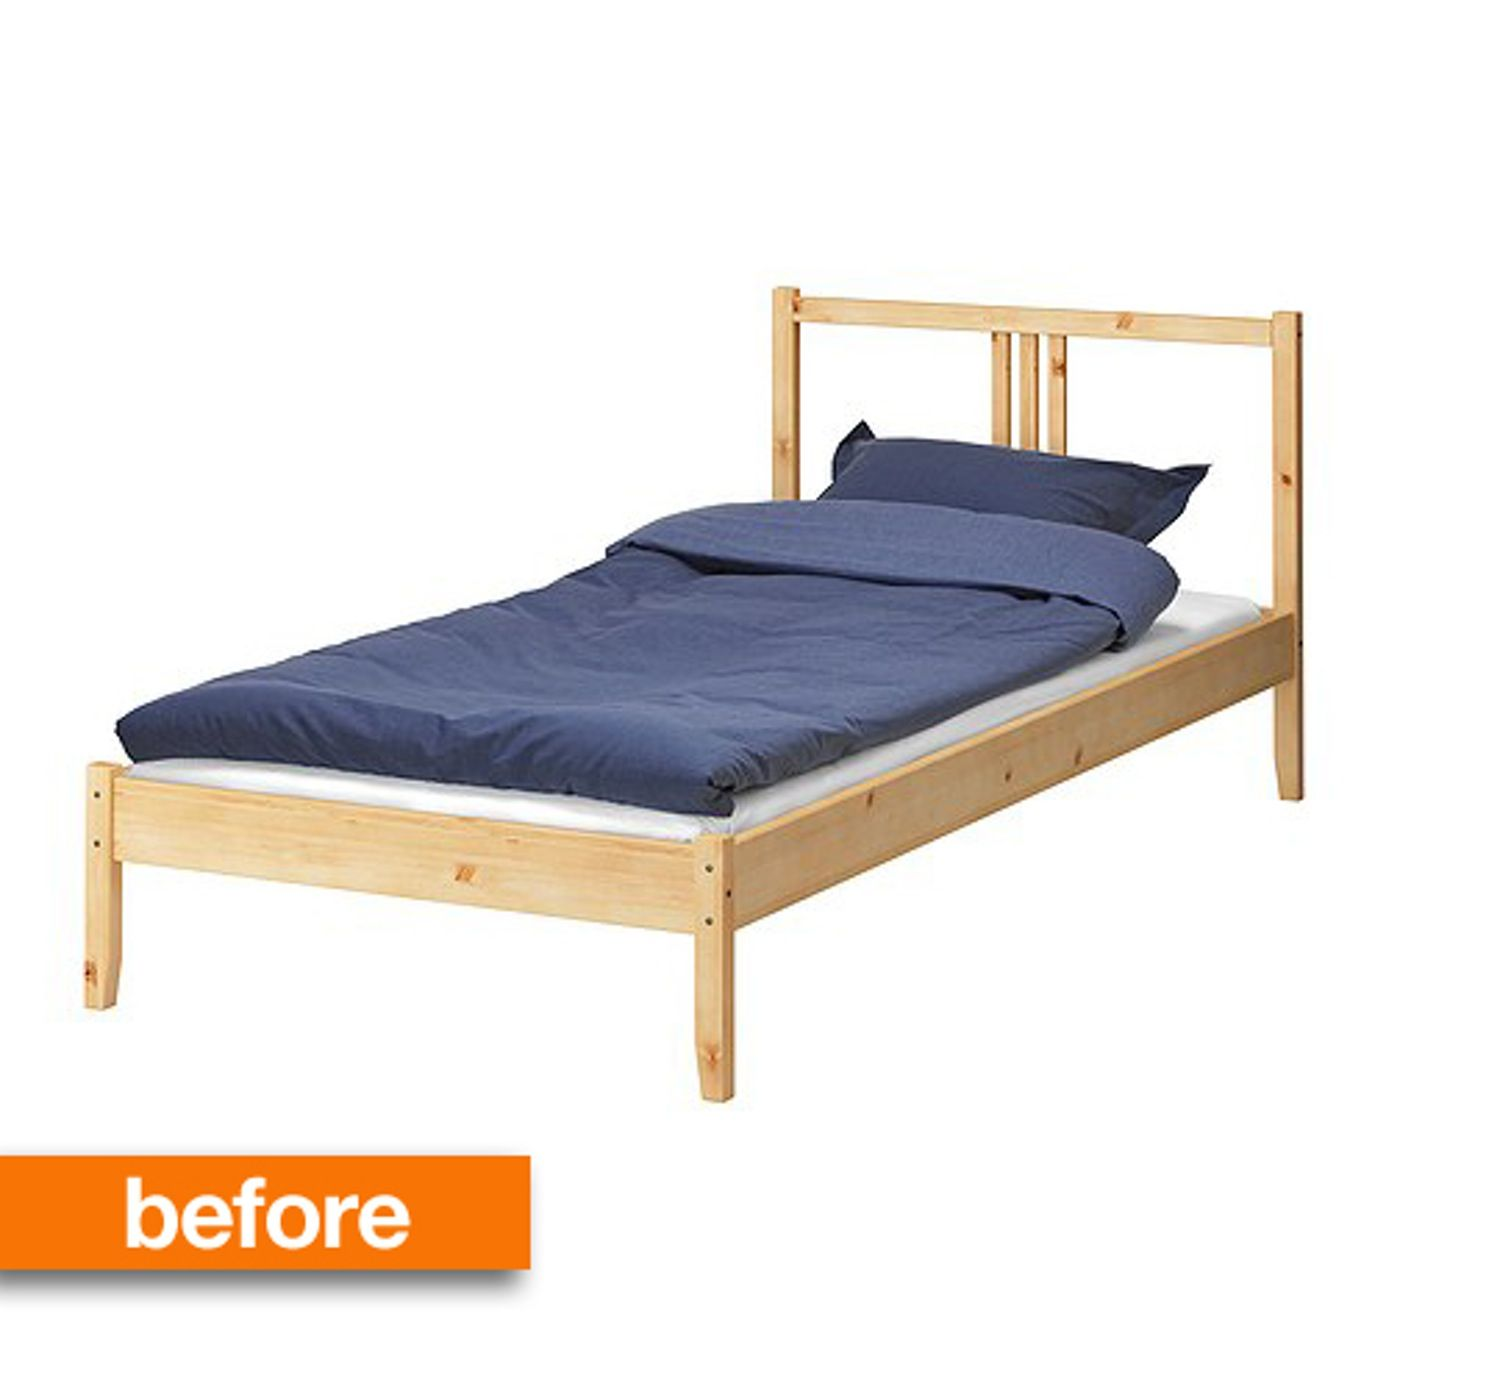 Before & After Simple Ikea Wooden Bed Frame Gets A